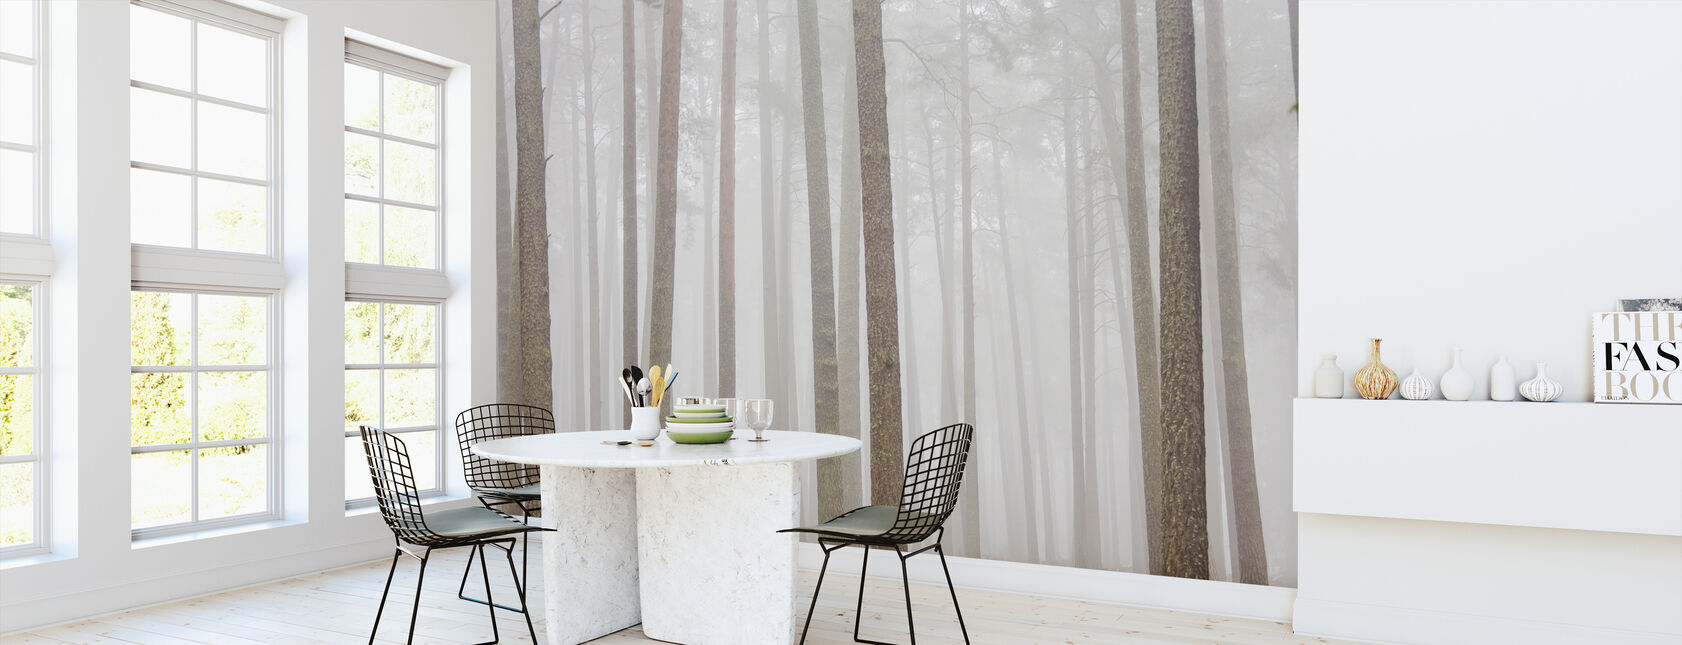 Misty Trees - Wallpaper - Kitchen